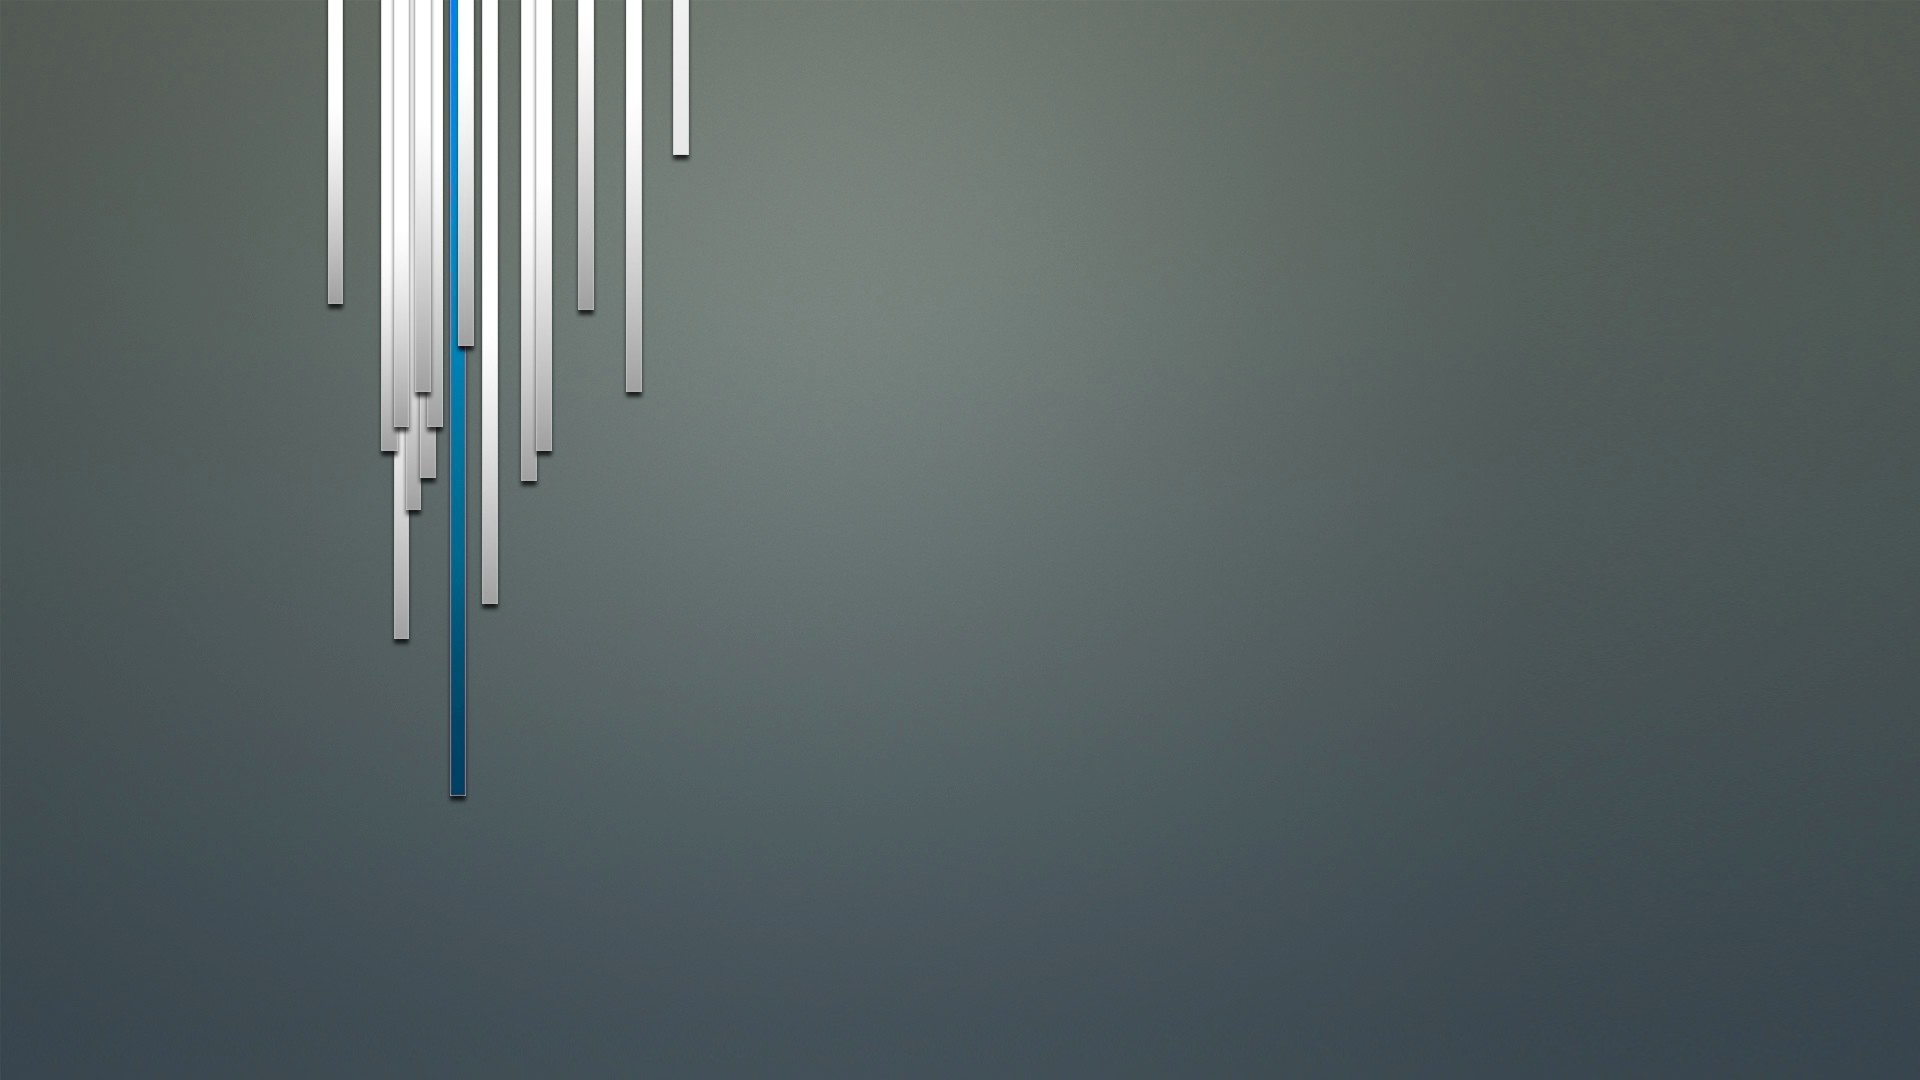 Preview wallpaper gray, blue, white, line, surface 1920×1080